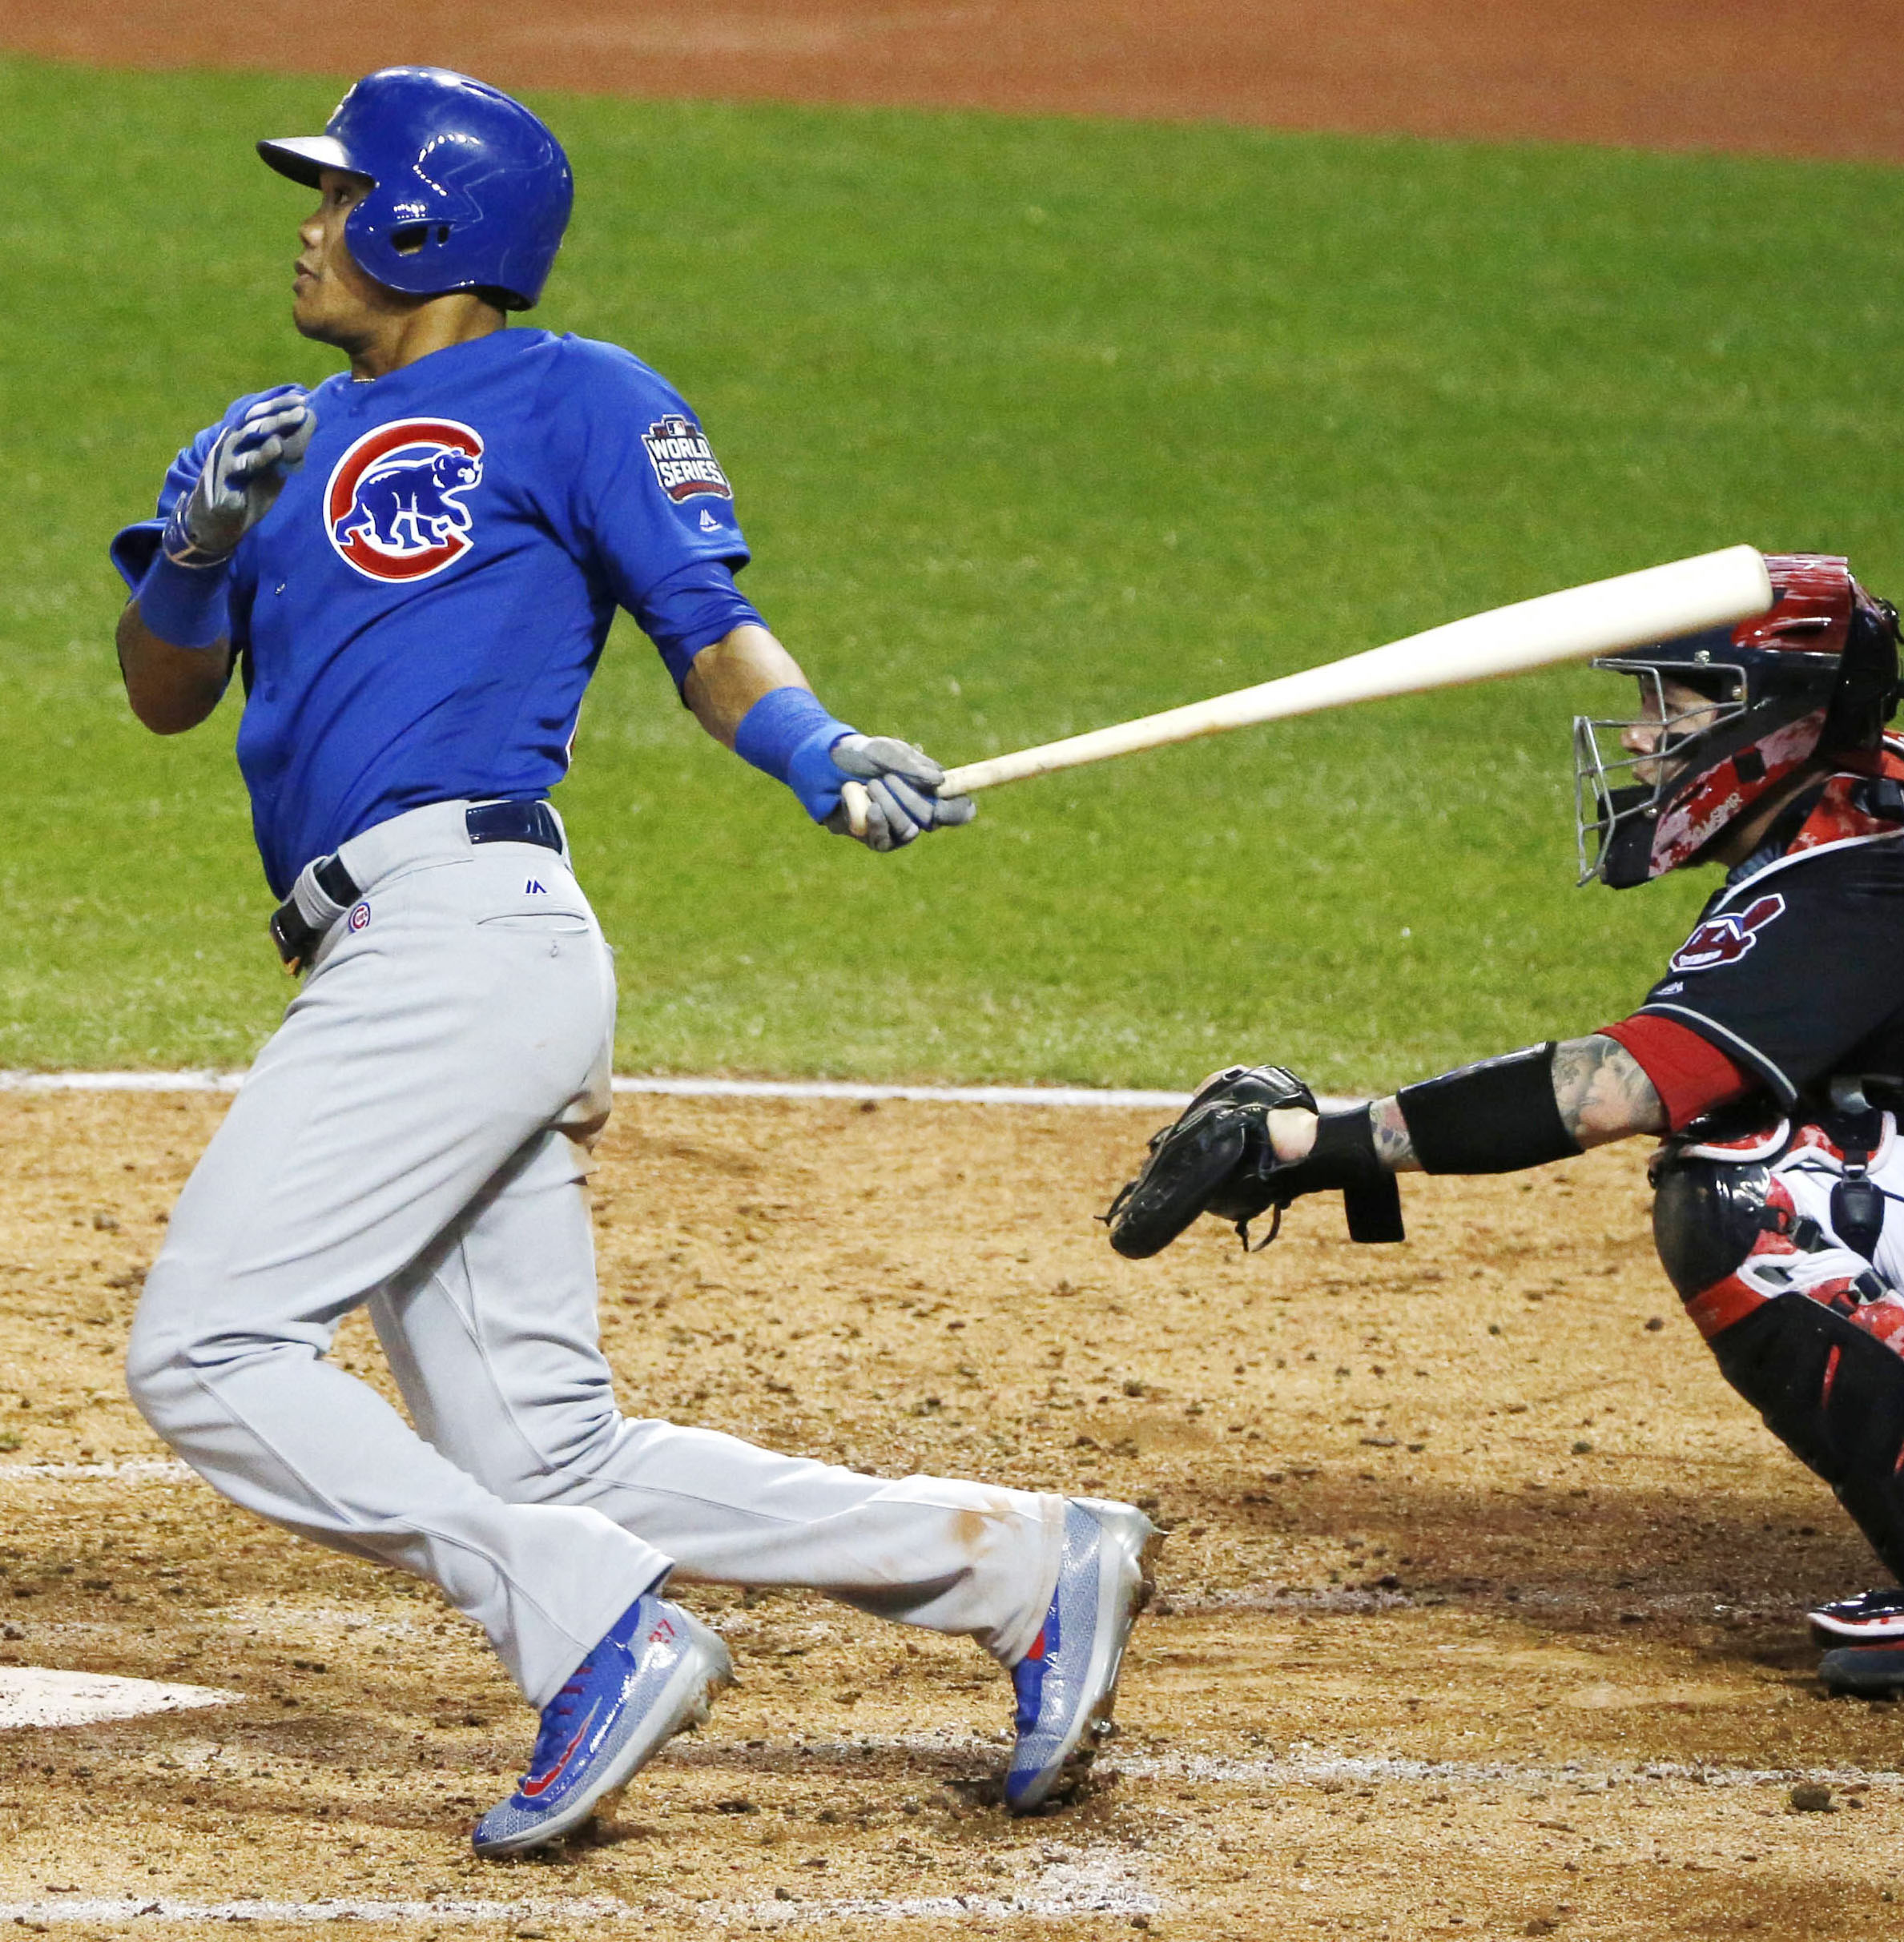 Addison Russell of the Chicago Cubs hits a grand slam in the third inning in Game 6 of the World Series against the Cleveland Indians at Progressive Field in Cleveland, Ohio, on Nov. 1, 2016. (Kyodo) ==Kyodo